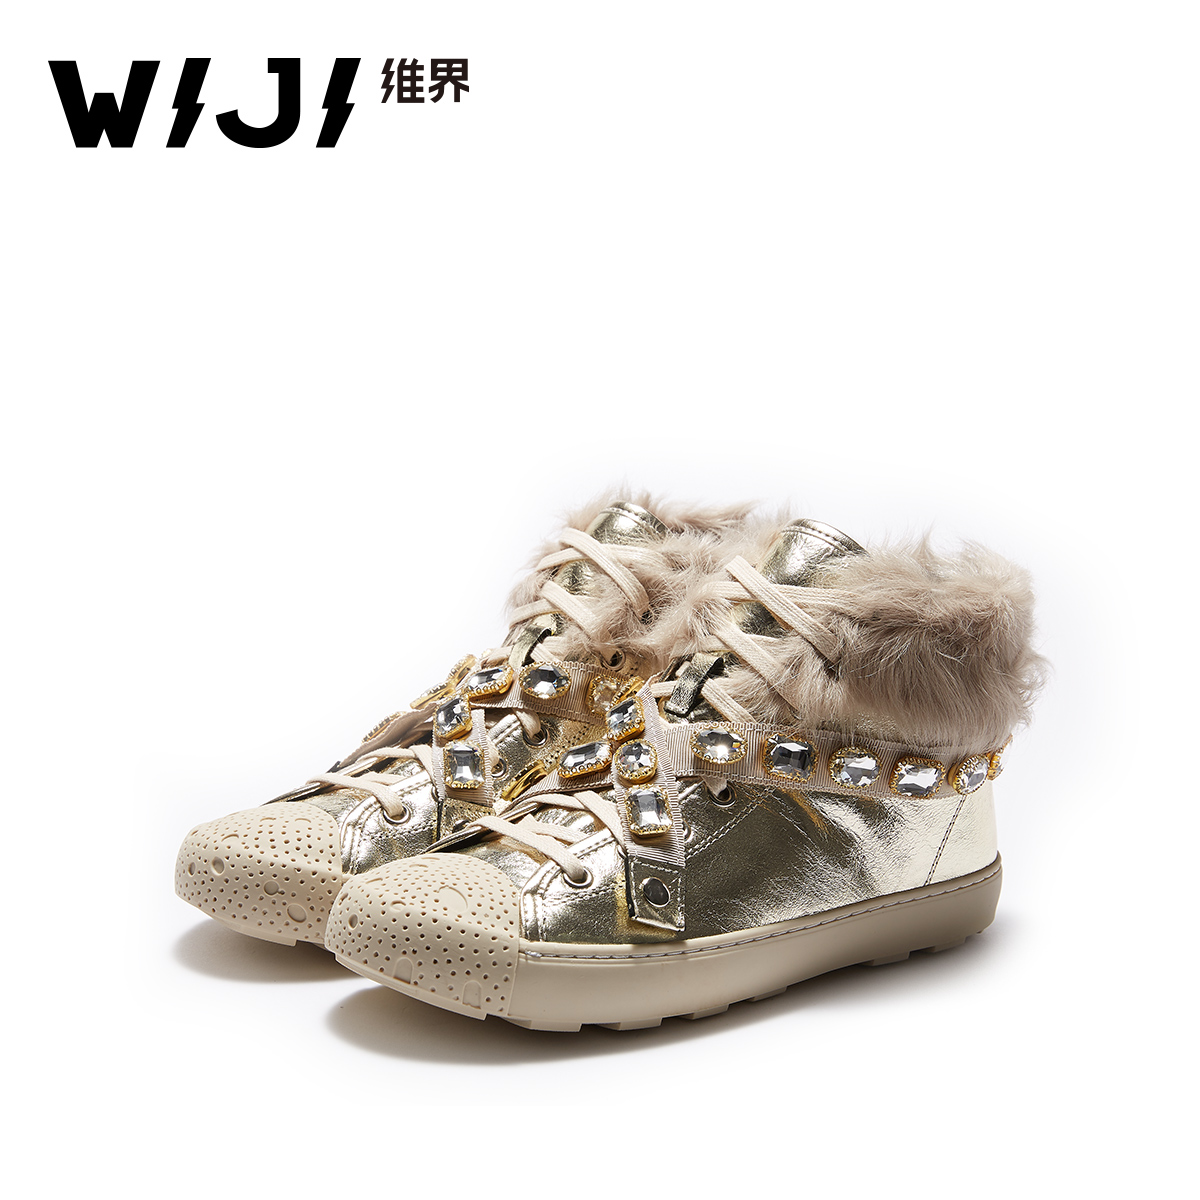 WIJI2018 fashion new European and American street casual tide shoes personality short boots warm snow boots high to help women's shoes